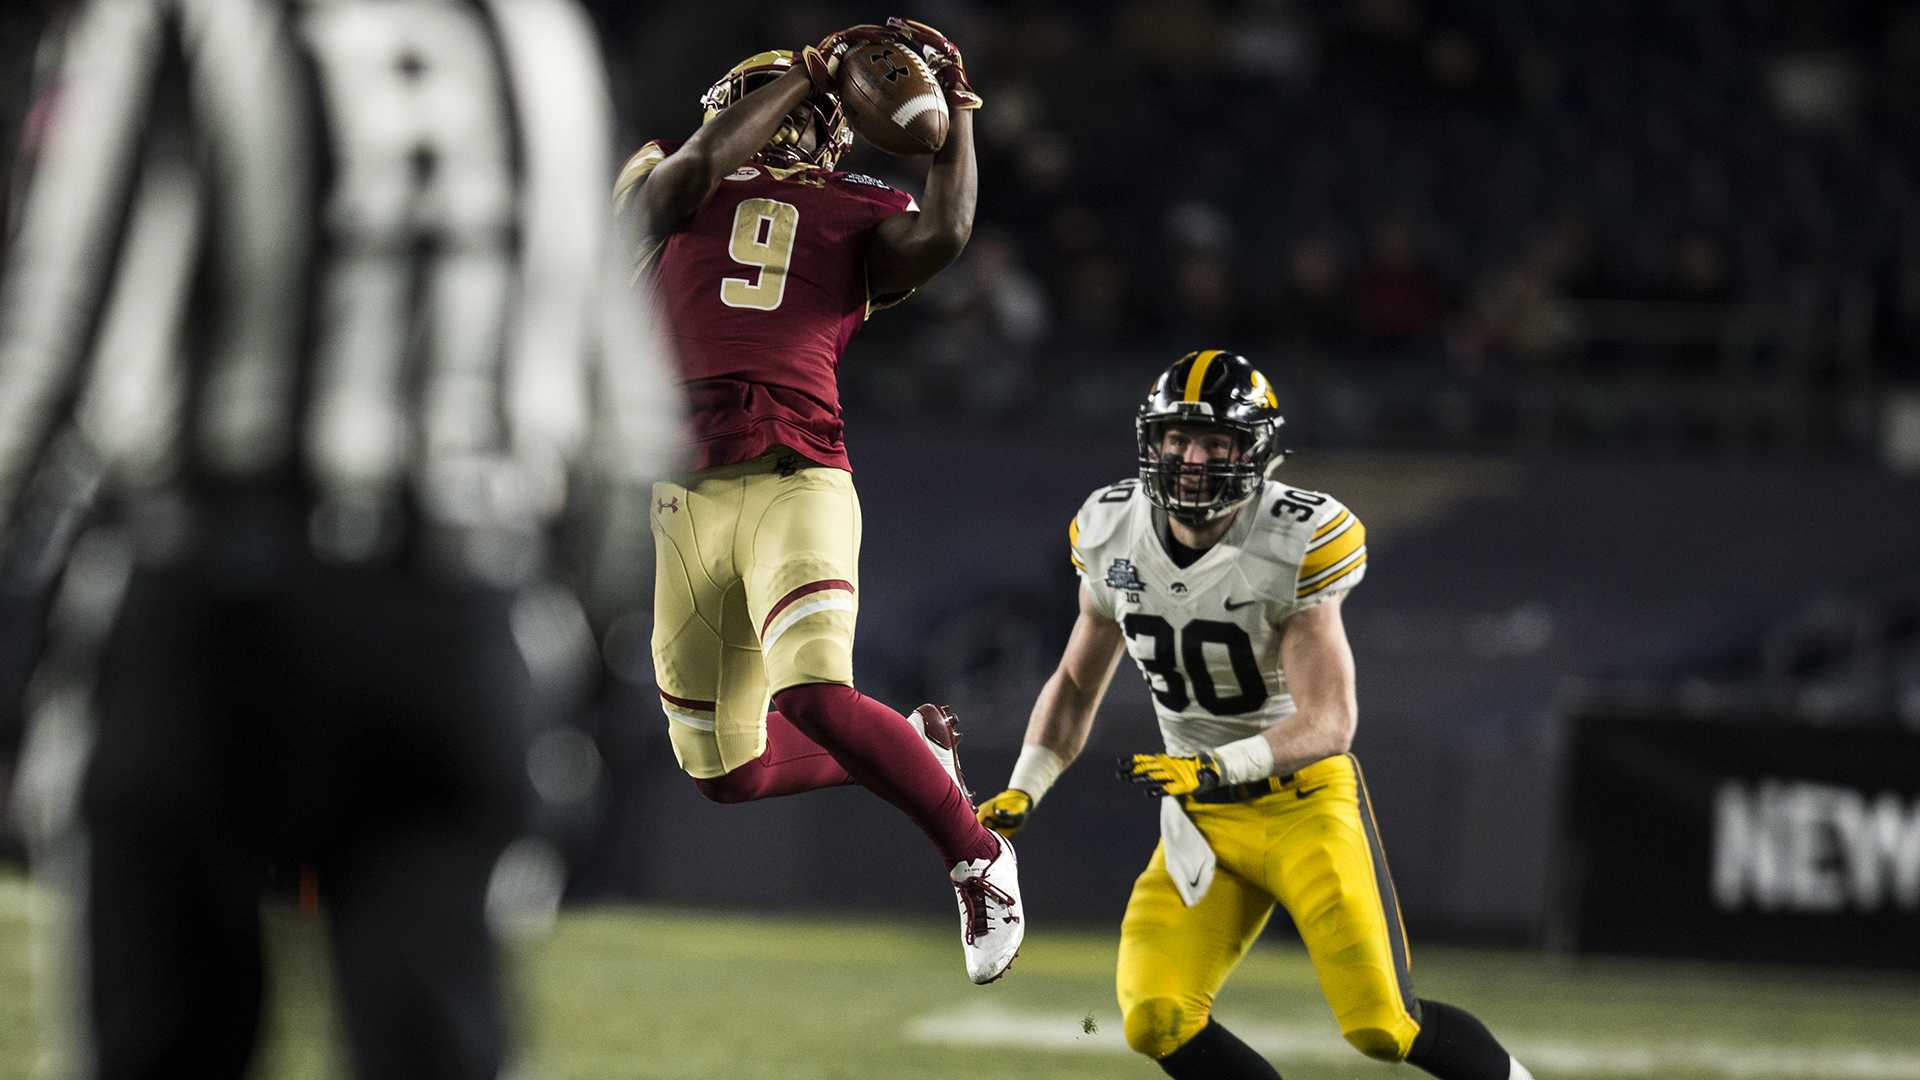 Boston College wide receiver Kobay White (9) catches the ball over Iowa's Jake Gervase (30) during the first half of the New Era Pinstripe Bowl at Yankee Stadium in New York on Wednesday, Dec. 27.